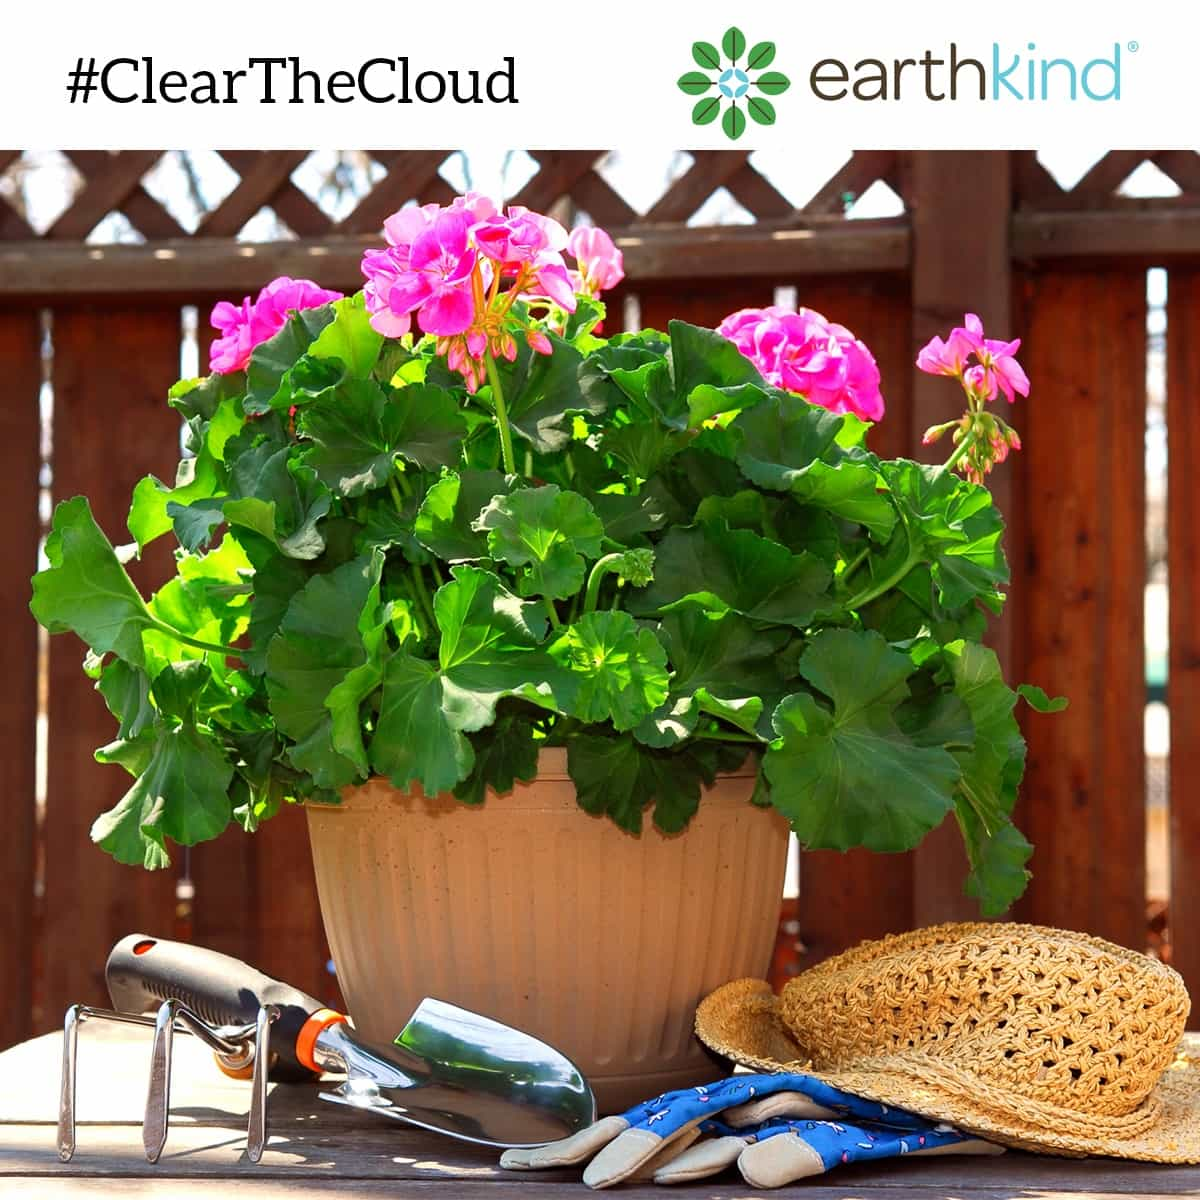 Plant flowers by your garden to attract insects and keep them out of your garden #ClearTheCloud, earthkind